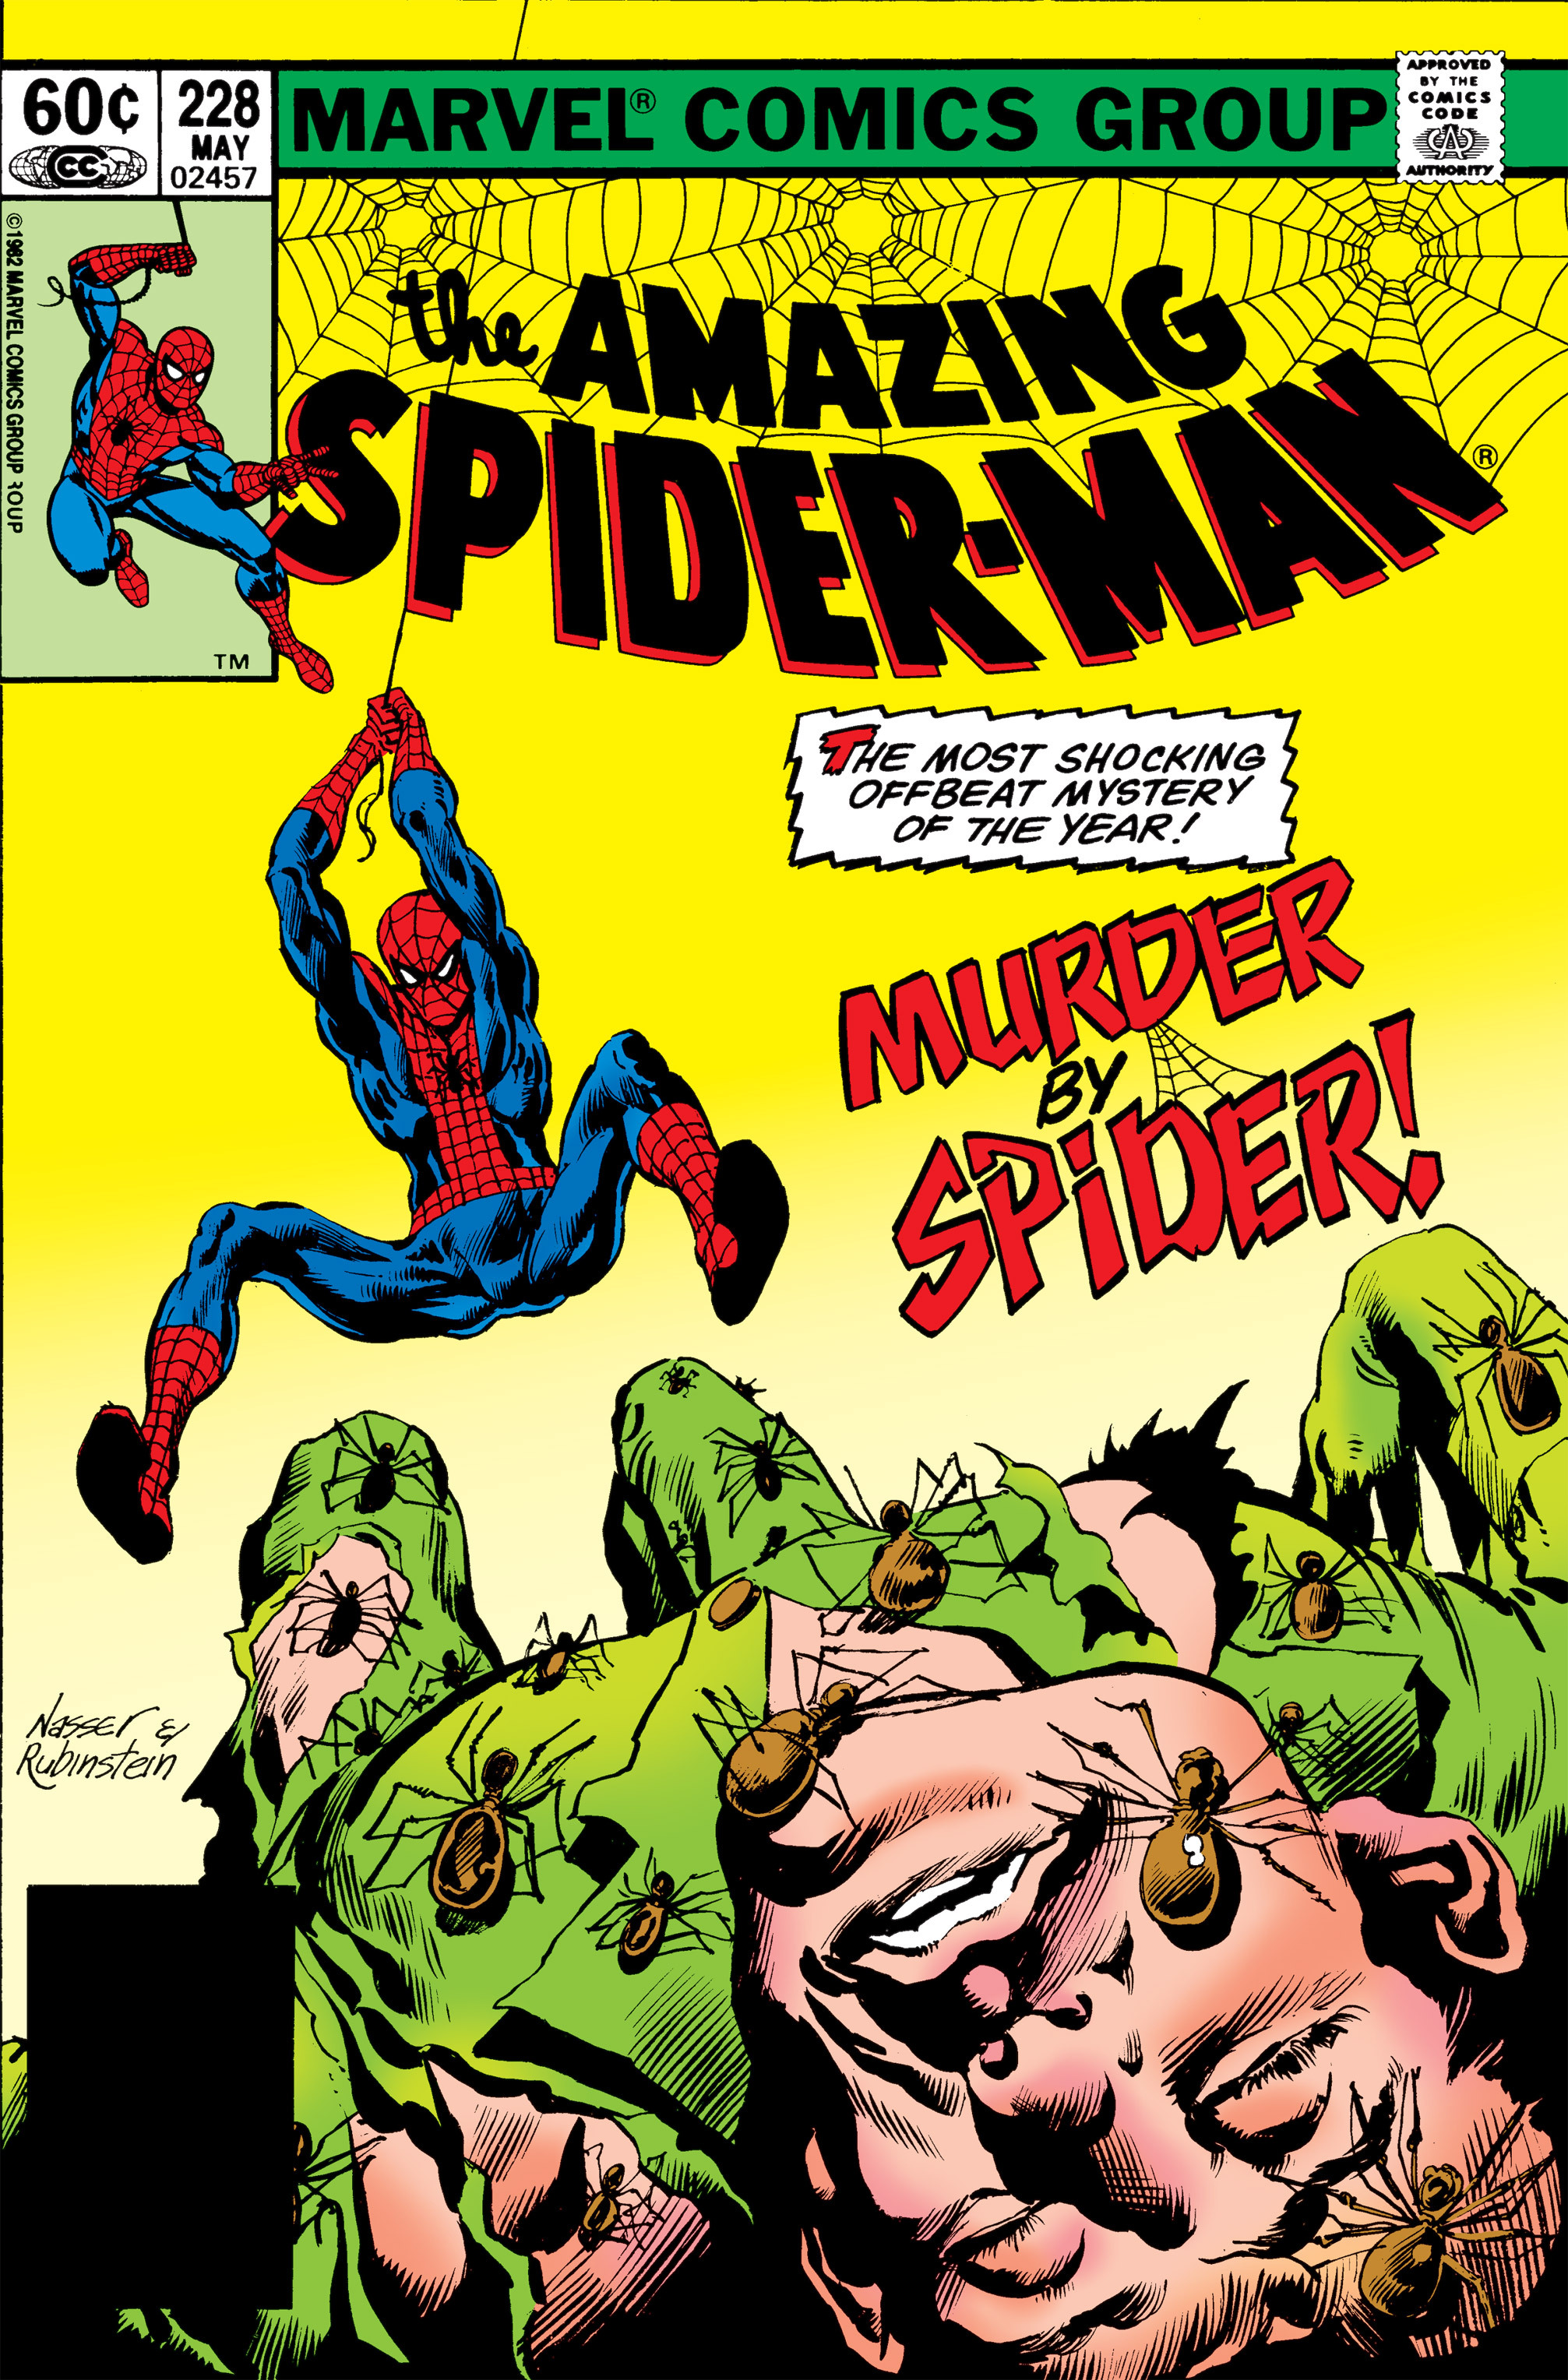 Amazing Spider-Man (1963) #228, cover penciled by Mike Nasser & inked by Joe Rubinstein.